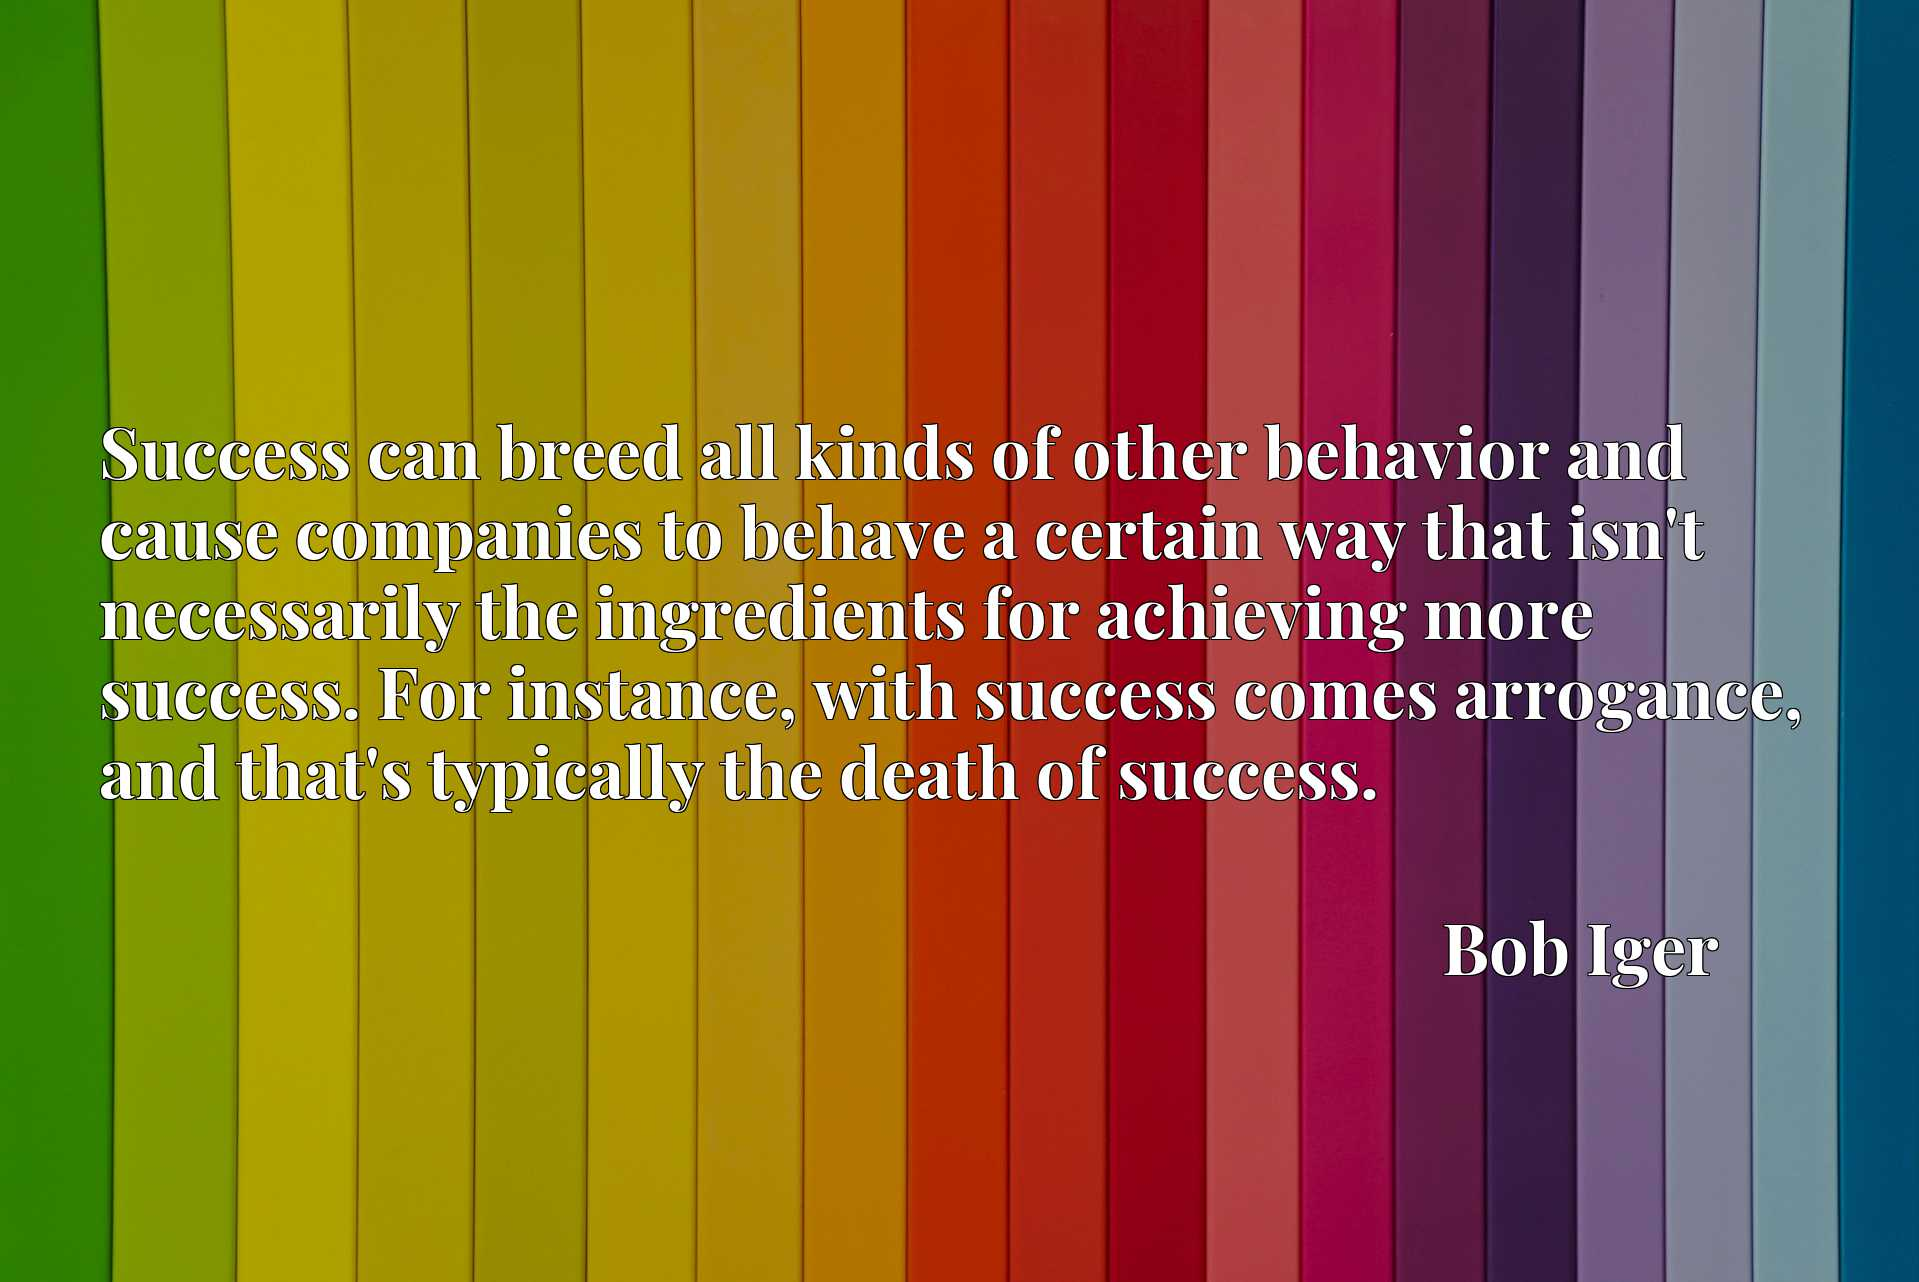 Success can breed all kinds of other behavior and cause companies to behave a certain way that isn't necessarily the ingredients for achieving more success. For instance, with success comes arrogance, and that's typically the death of success.